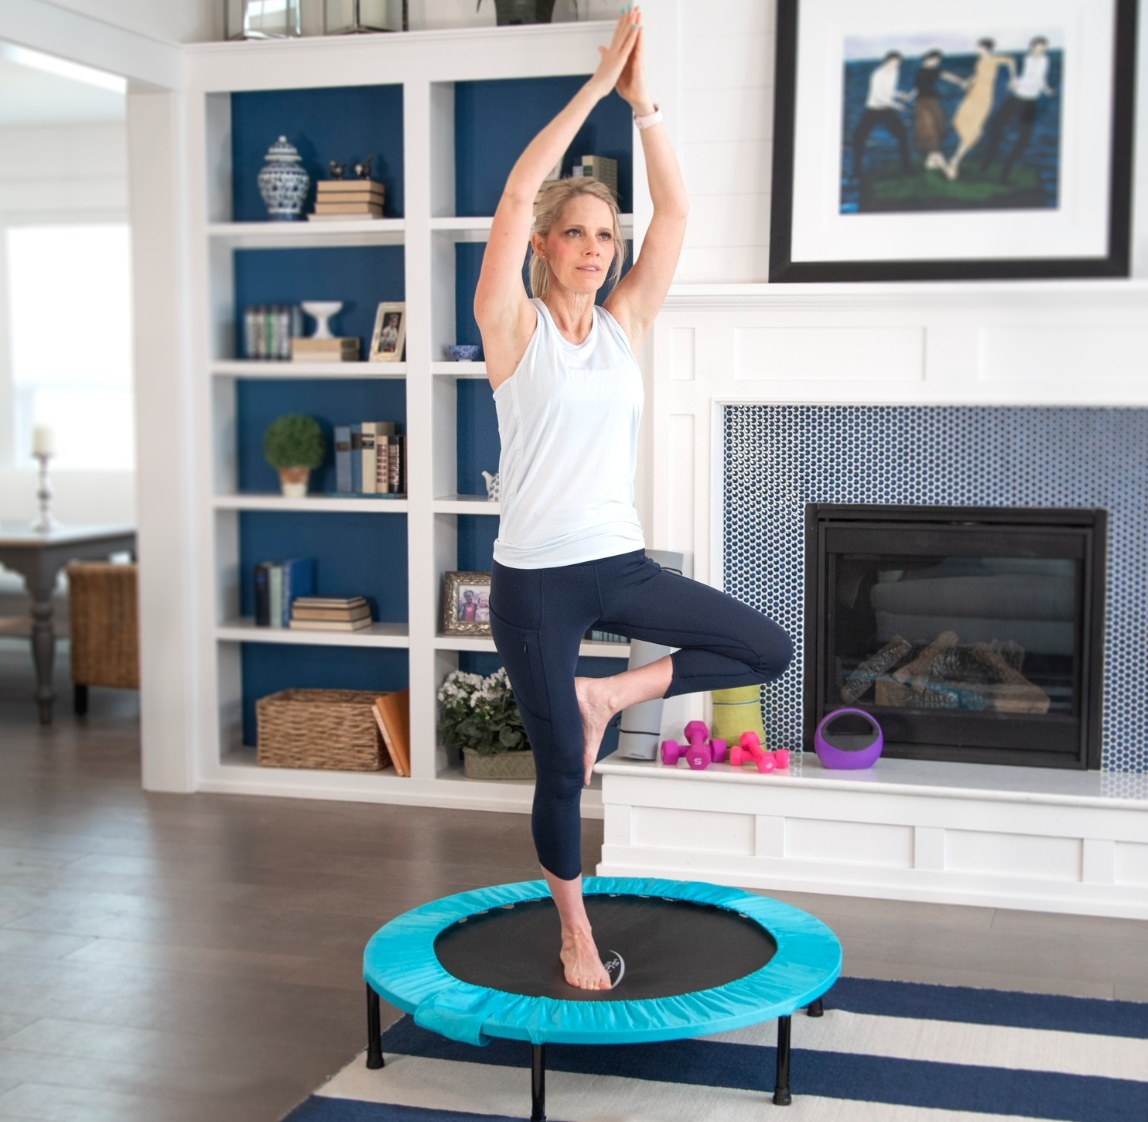 The fitness trampoline in teal